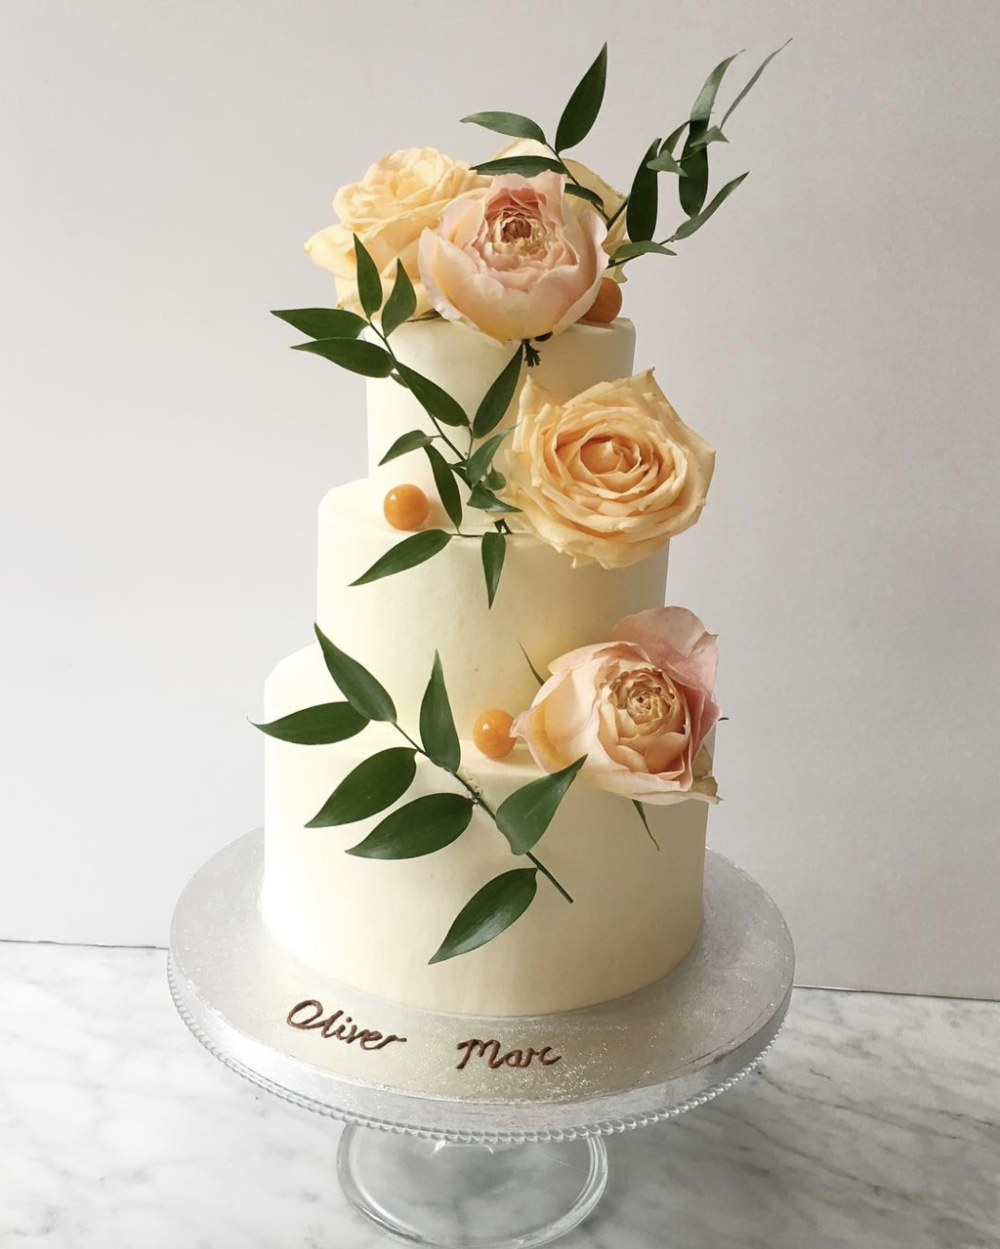 And master of the perfect simple wedding cake  @lily_vanilli_cake